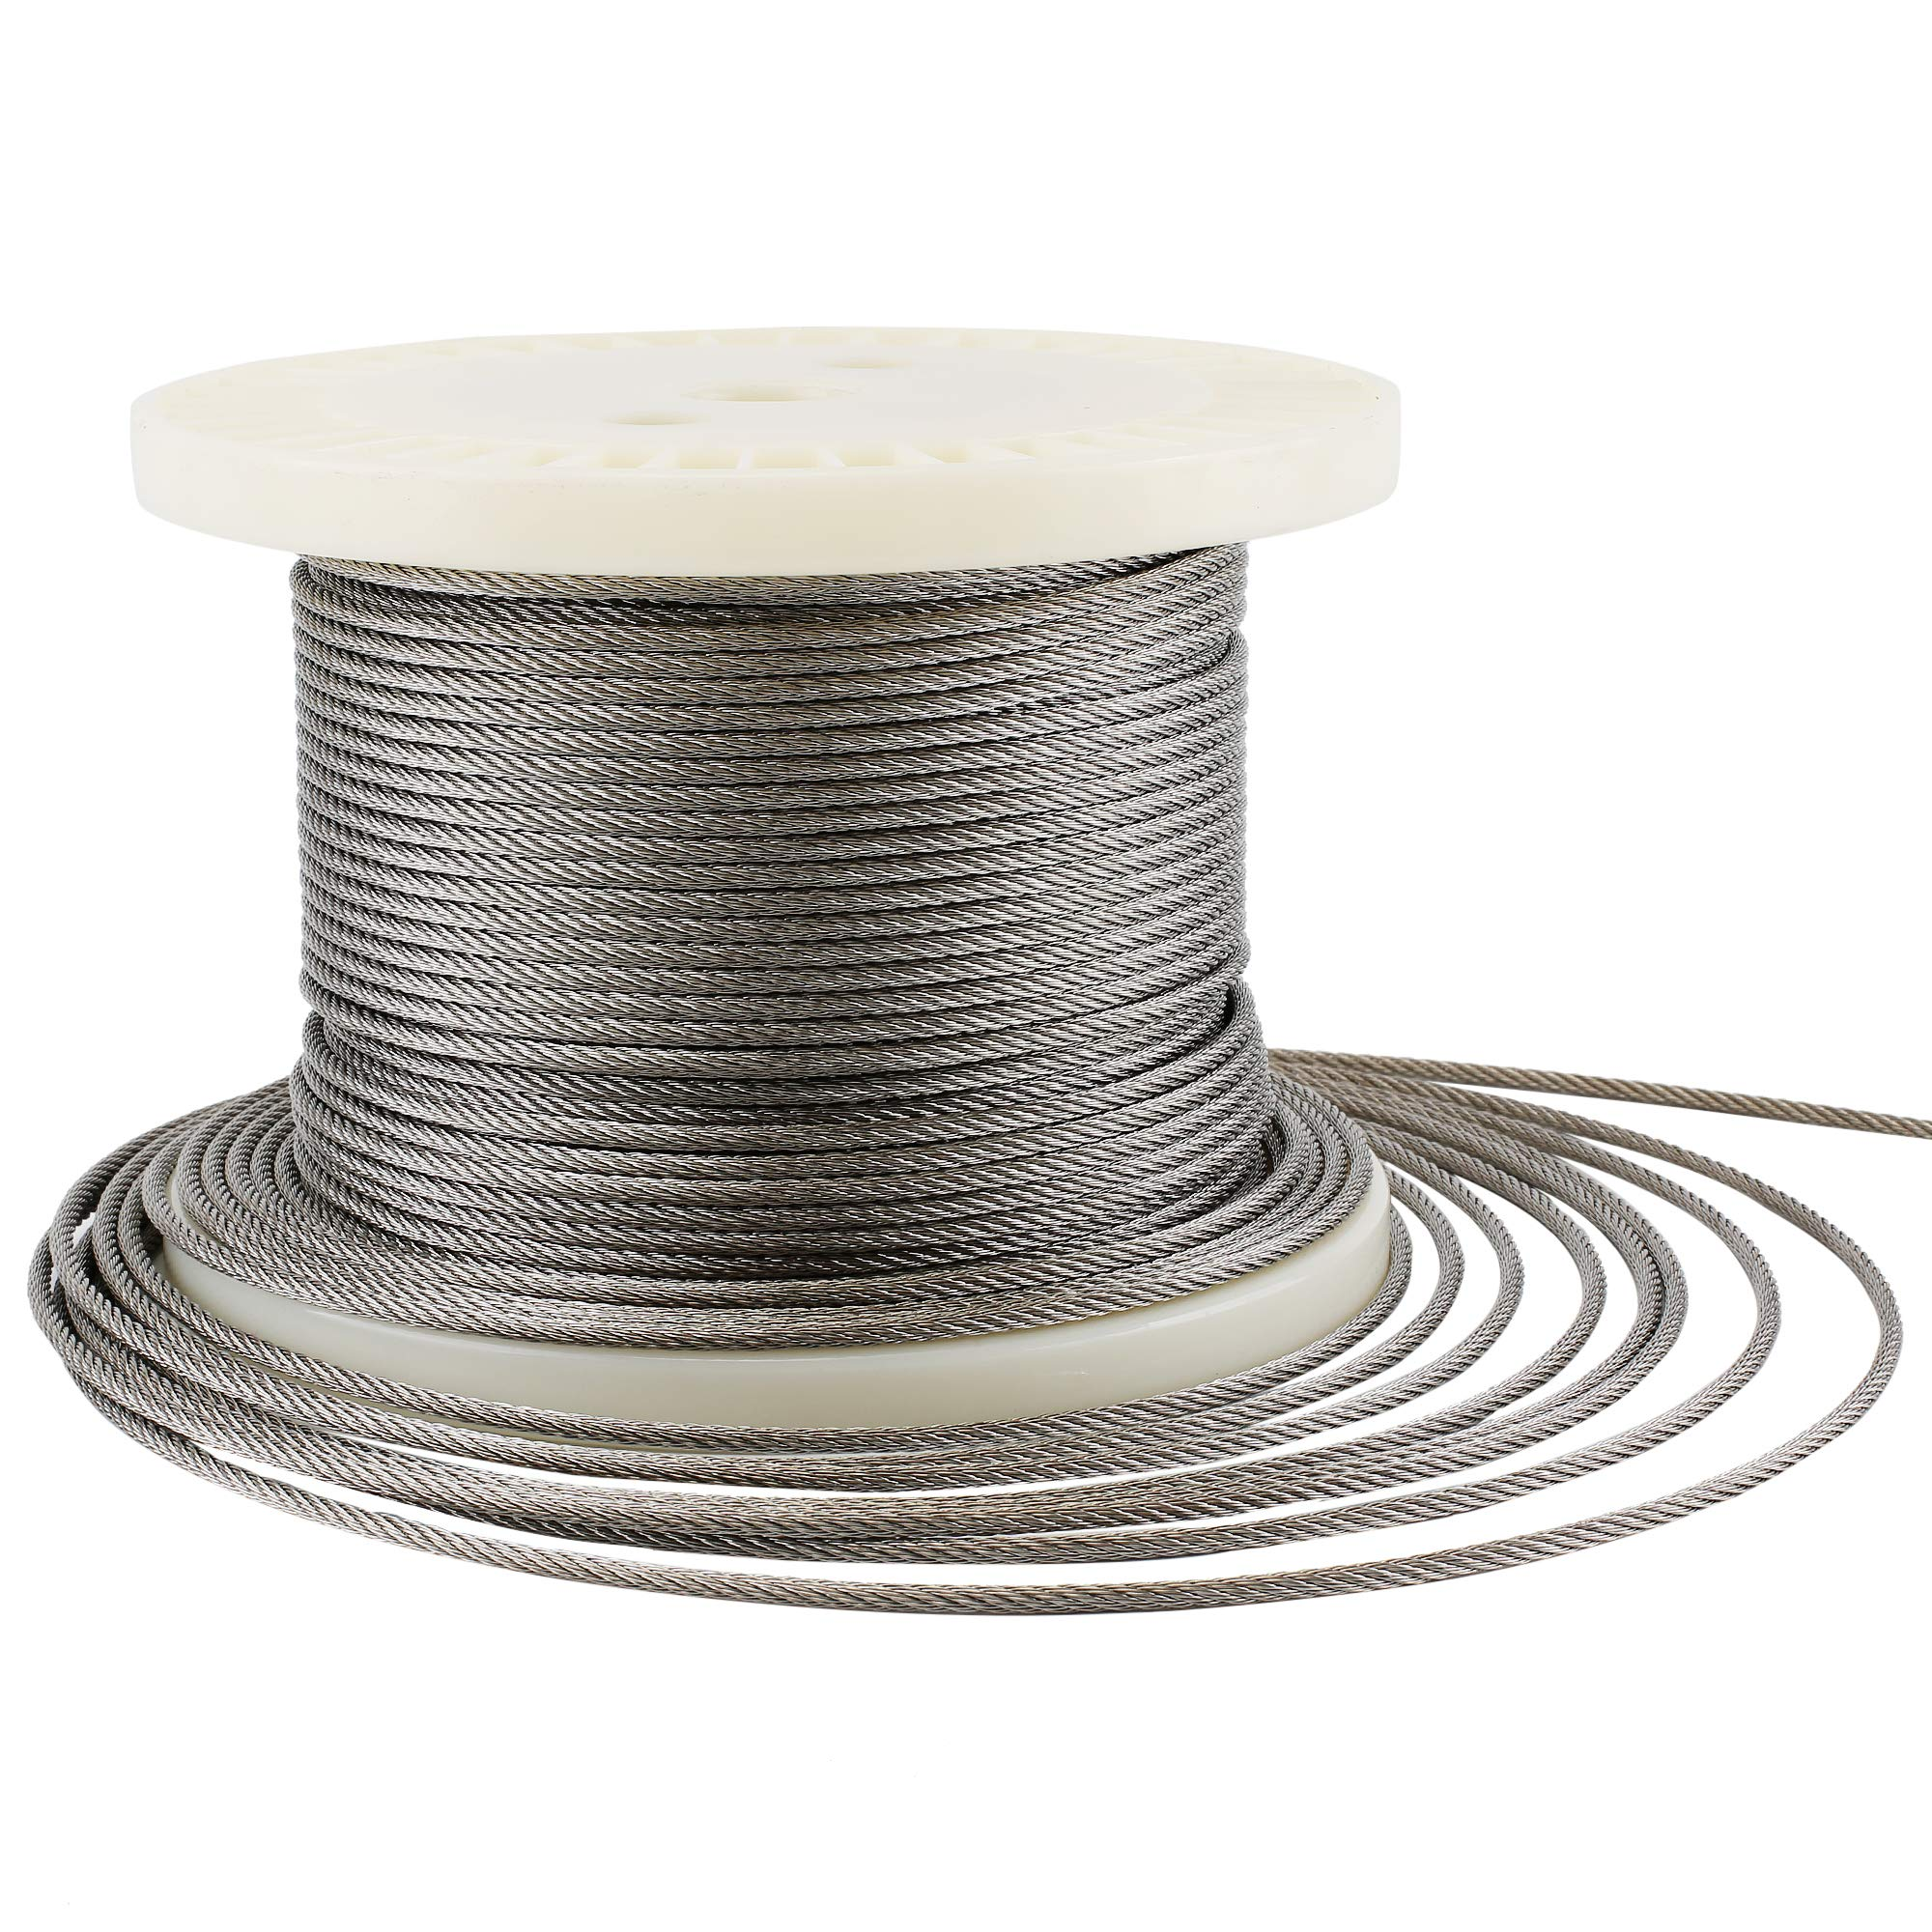 Muzerdo 200Ft Stainless 1/8Inch Aircraft Steel Wire Rope Cable 7x7 for Railing, Decking, DIY Balustrade